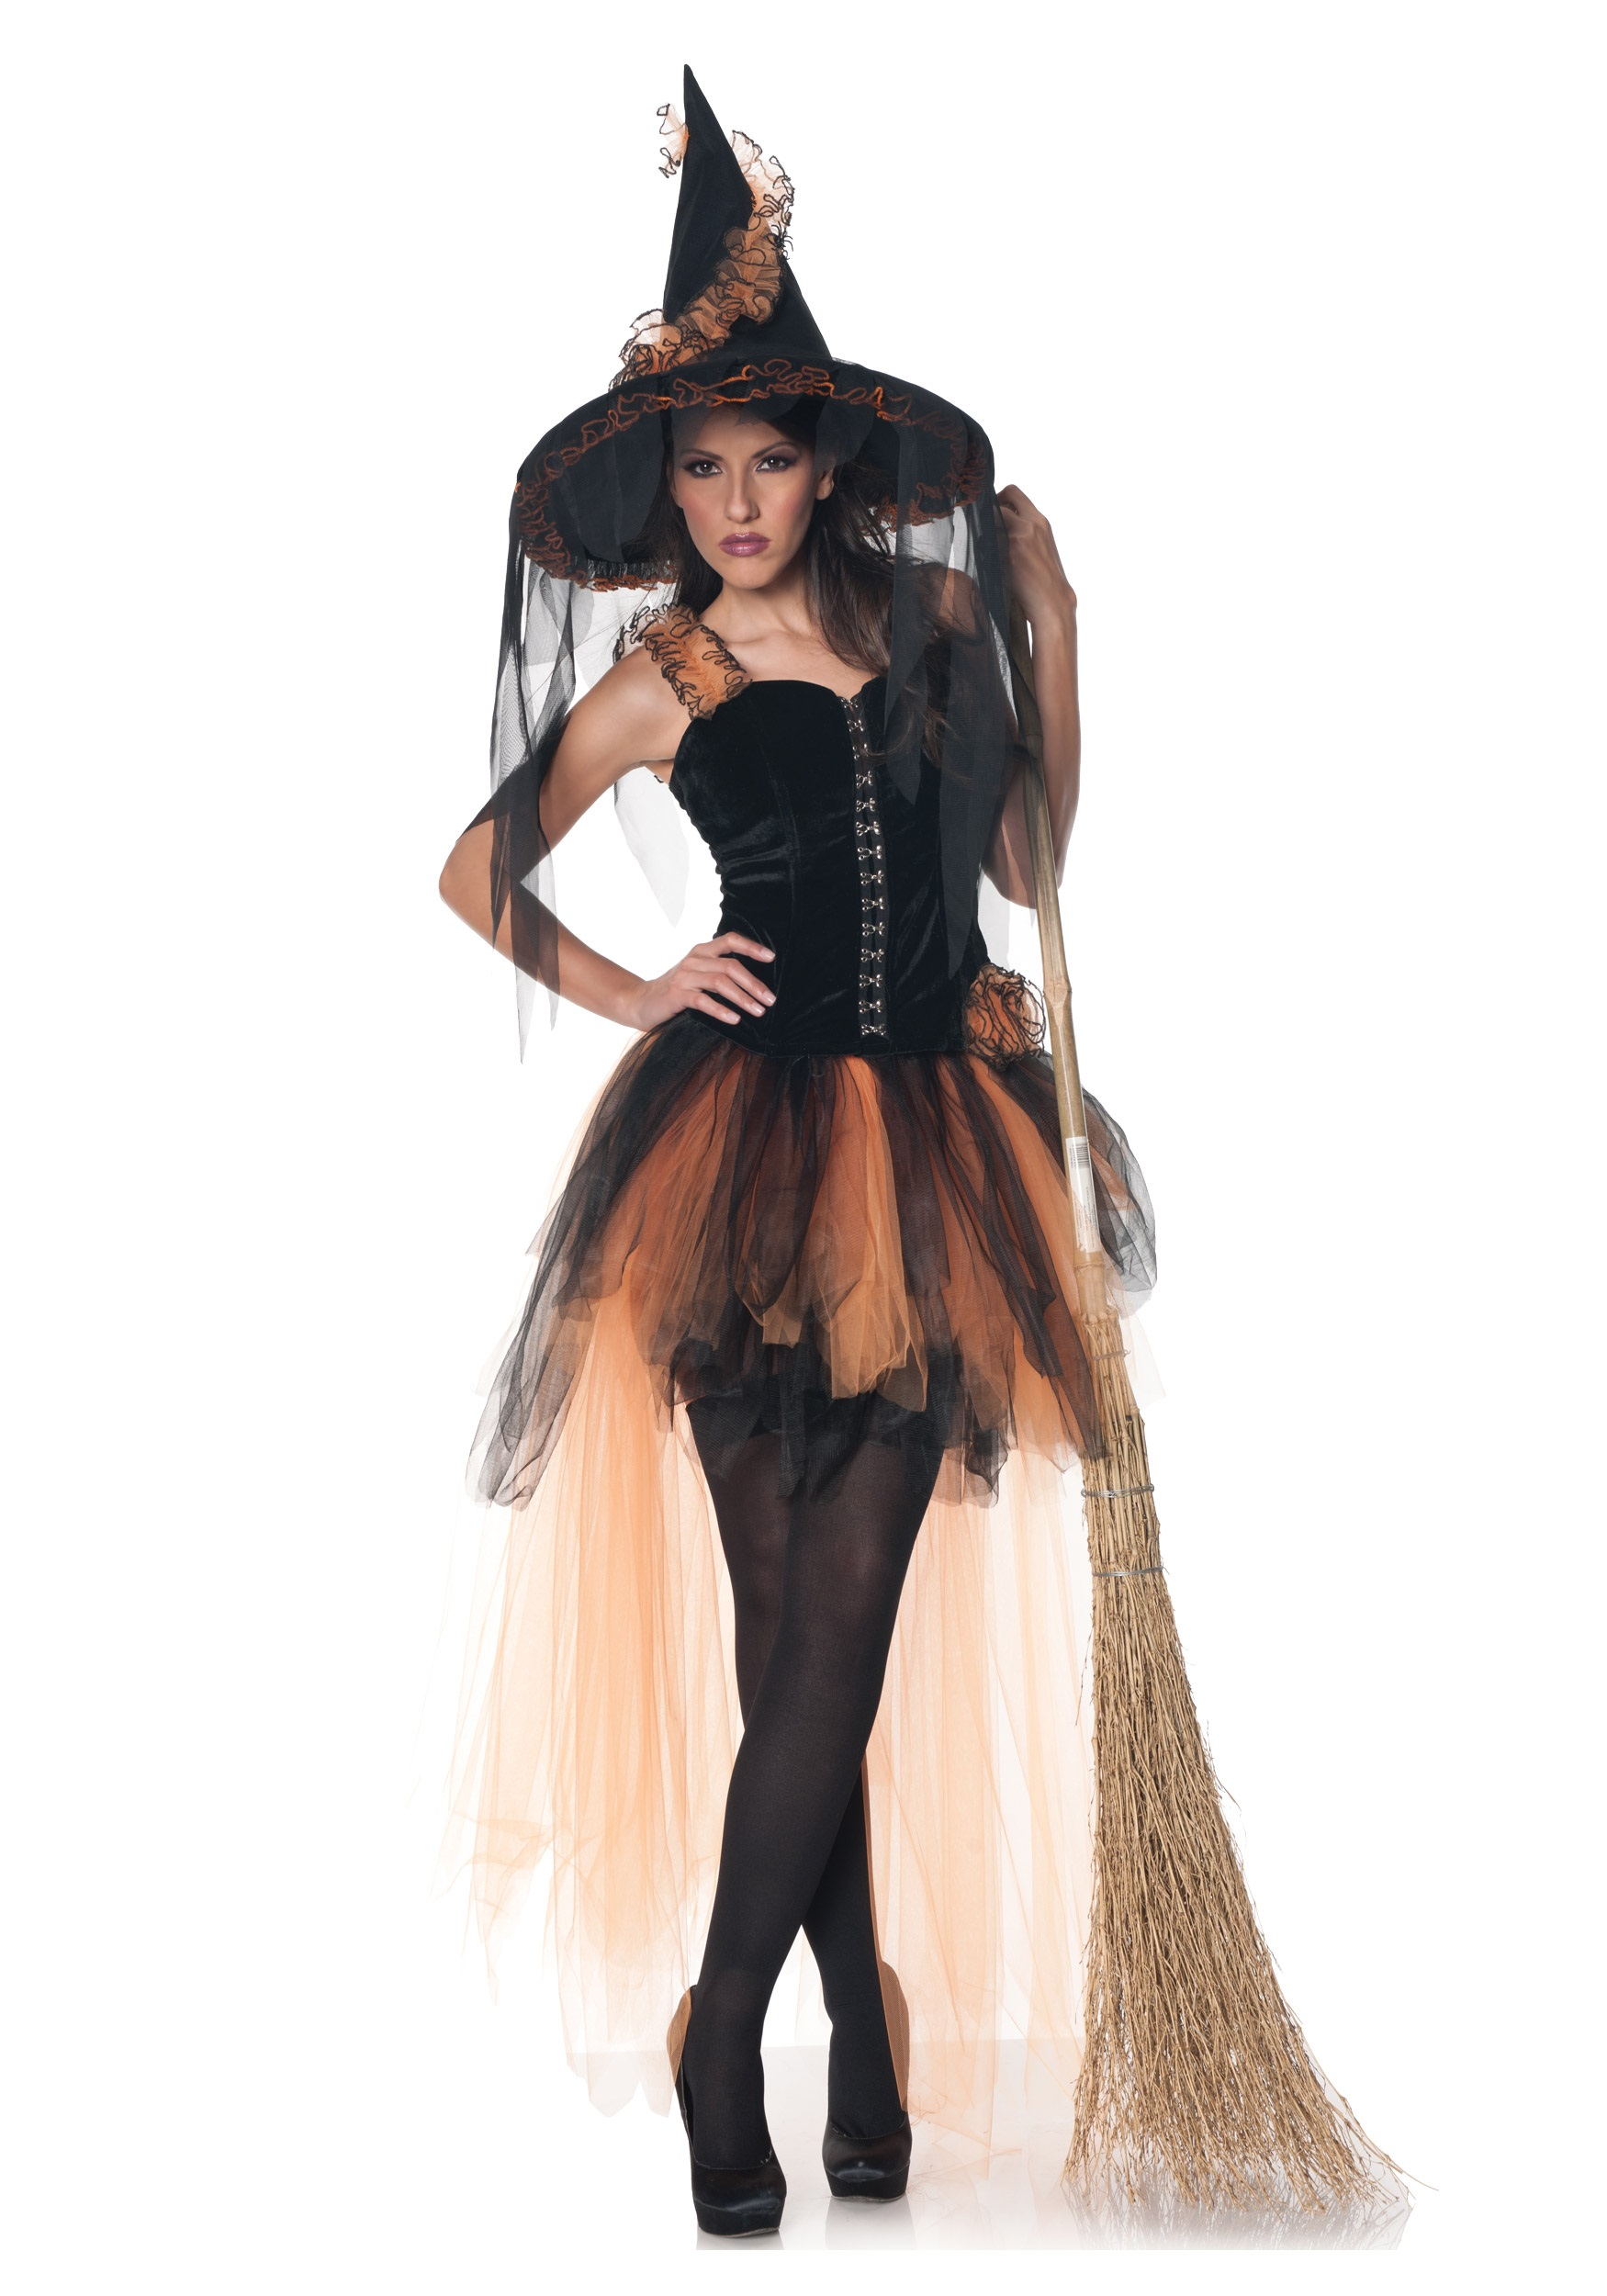 Hollowu0027s Eve Womens Orange and Black Witch Costume  sc 1 st  Halloween Costumes & Hallowu0027s Eve Womenu0027s Orange u0026 Black Witch Costume